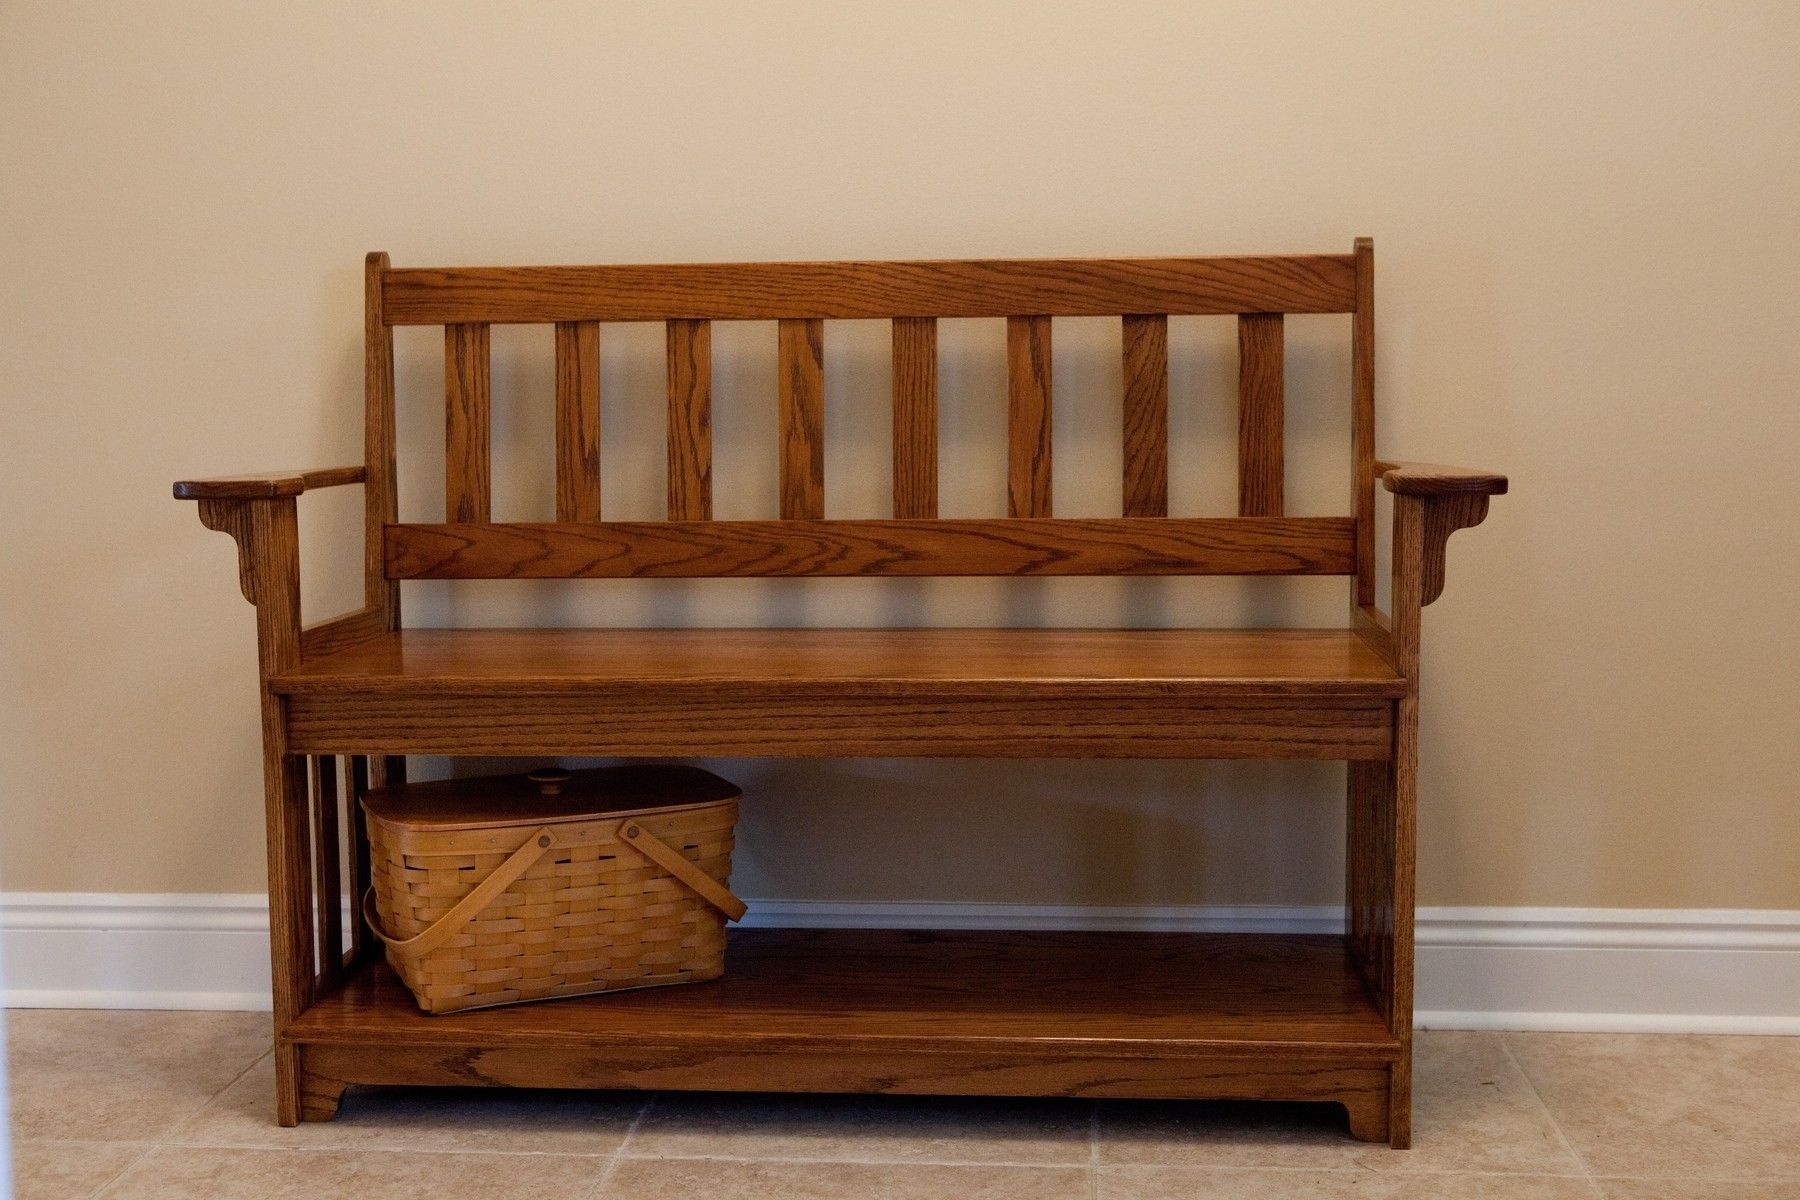 furniturewoodenentrywaybenchwitharmsbackandsingle